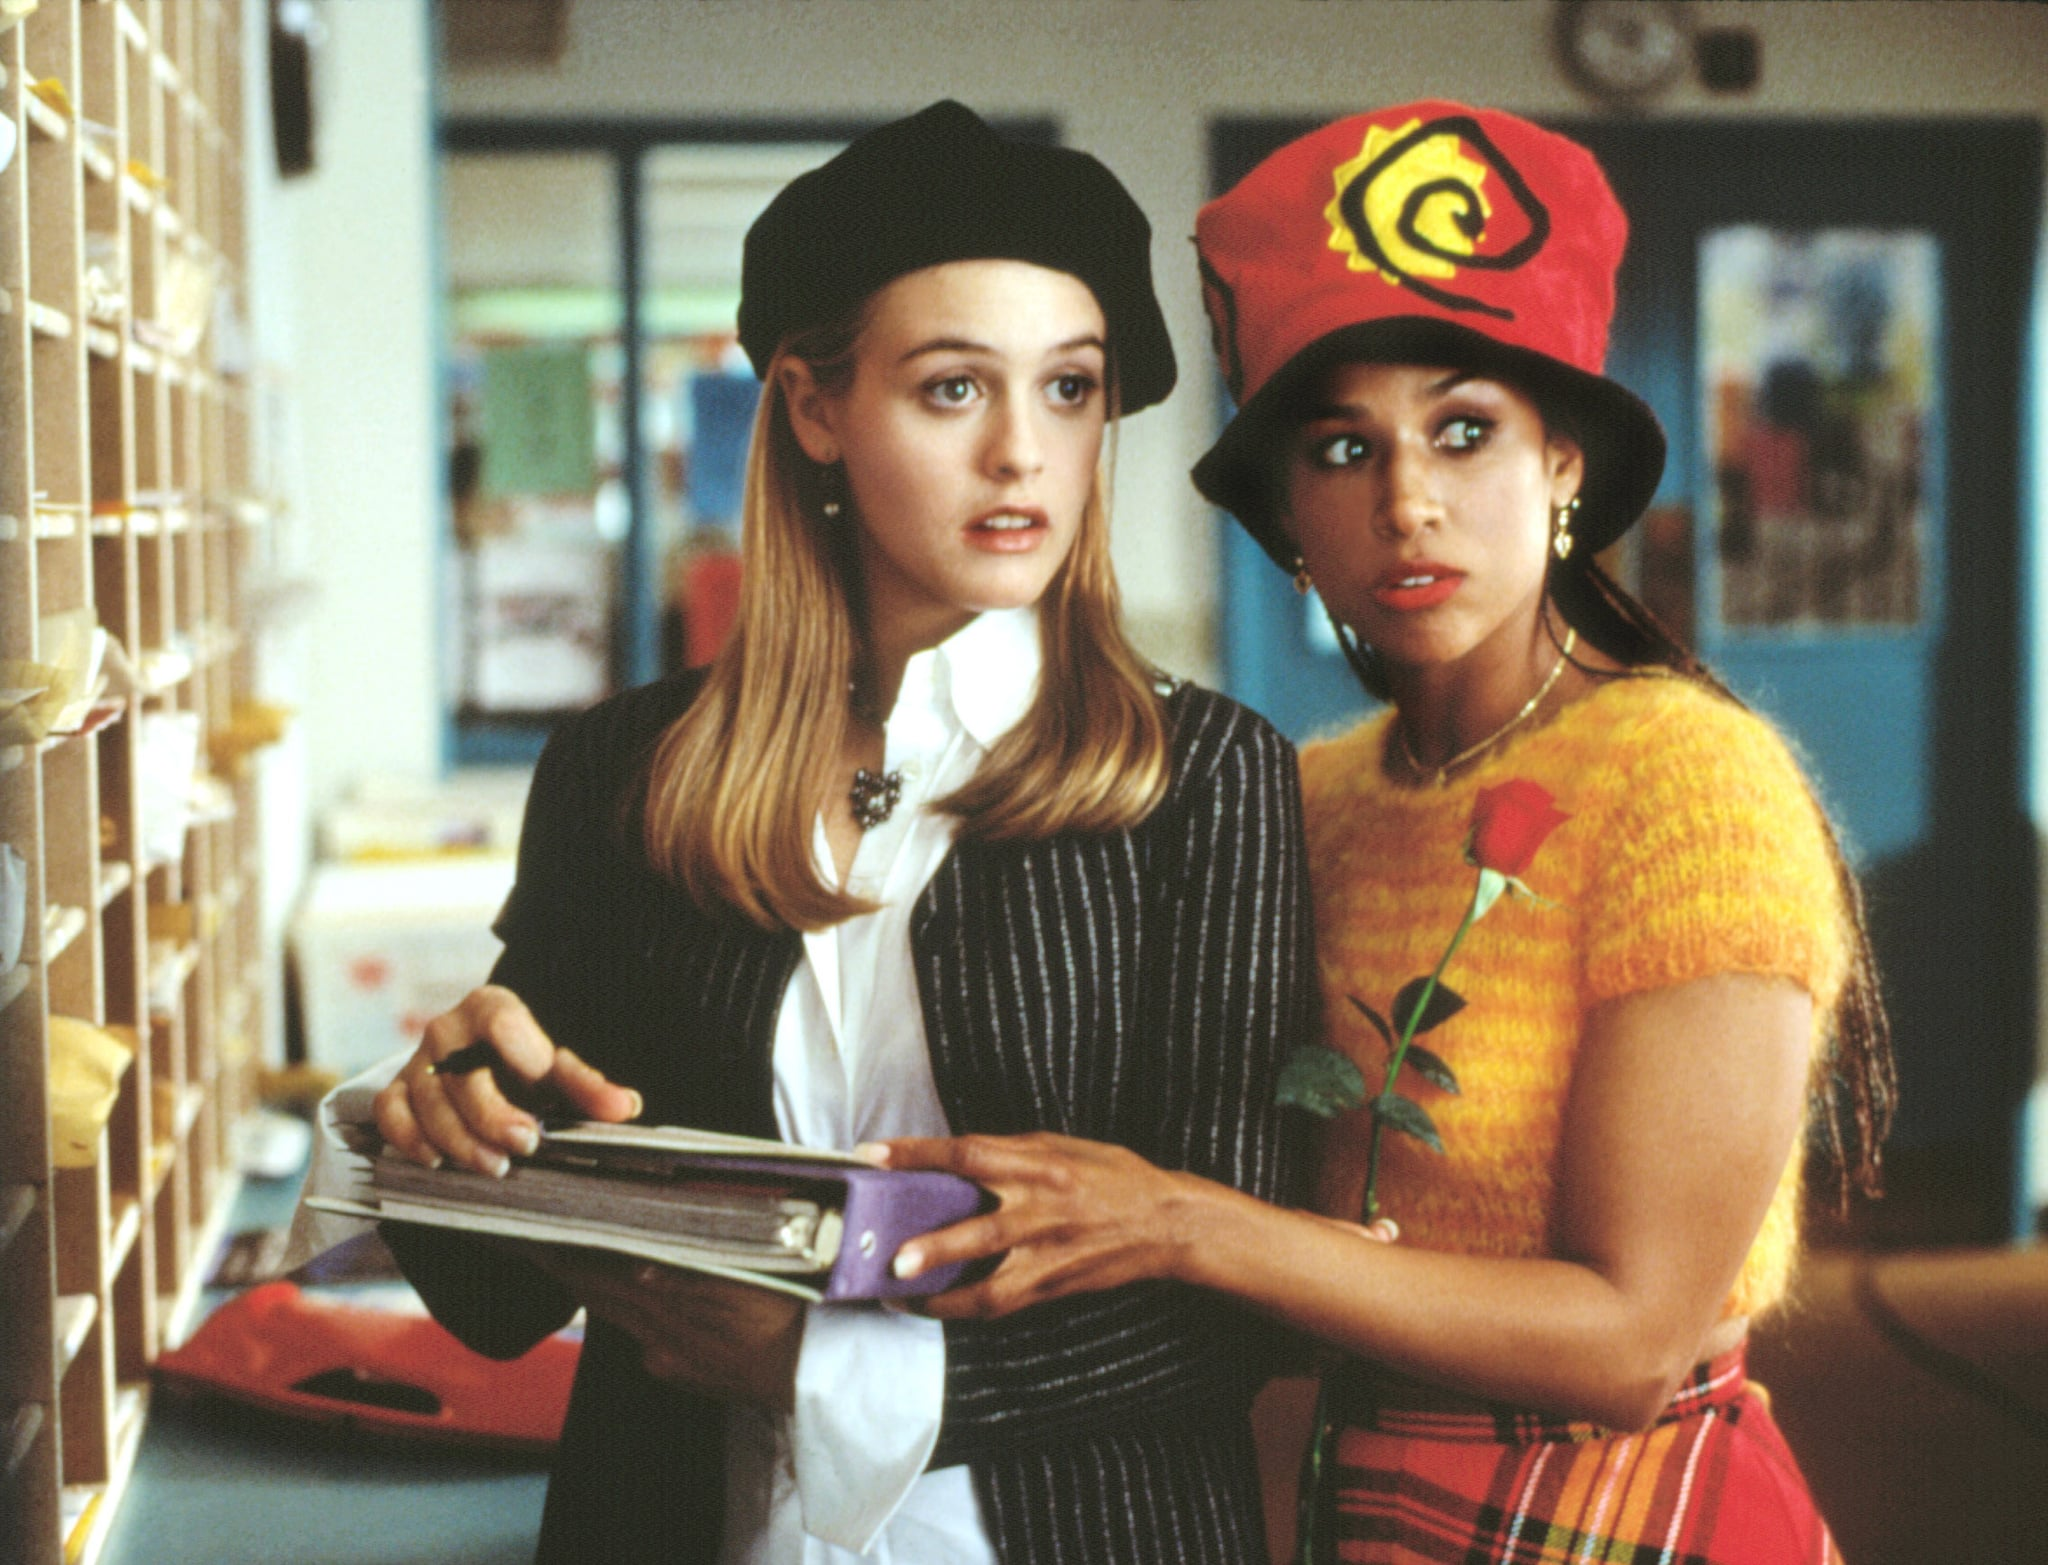 CLUELESS, Alicia Silverstone, Stacey Dash, 1995. Paramount/Courtesy Everett Collection